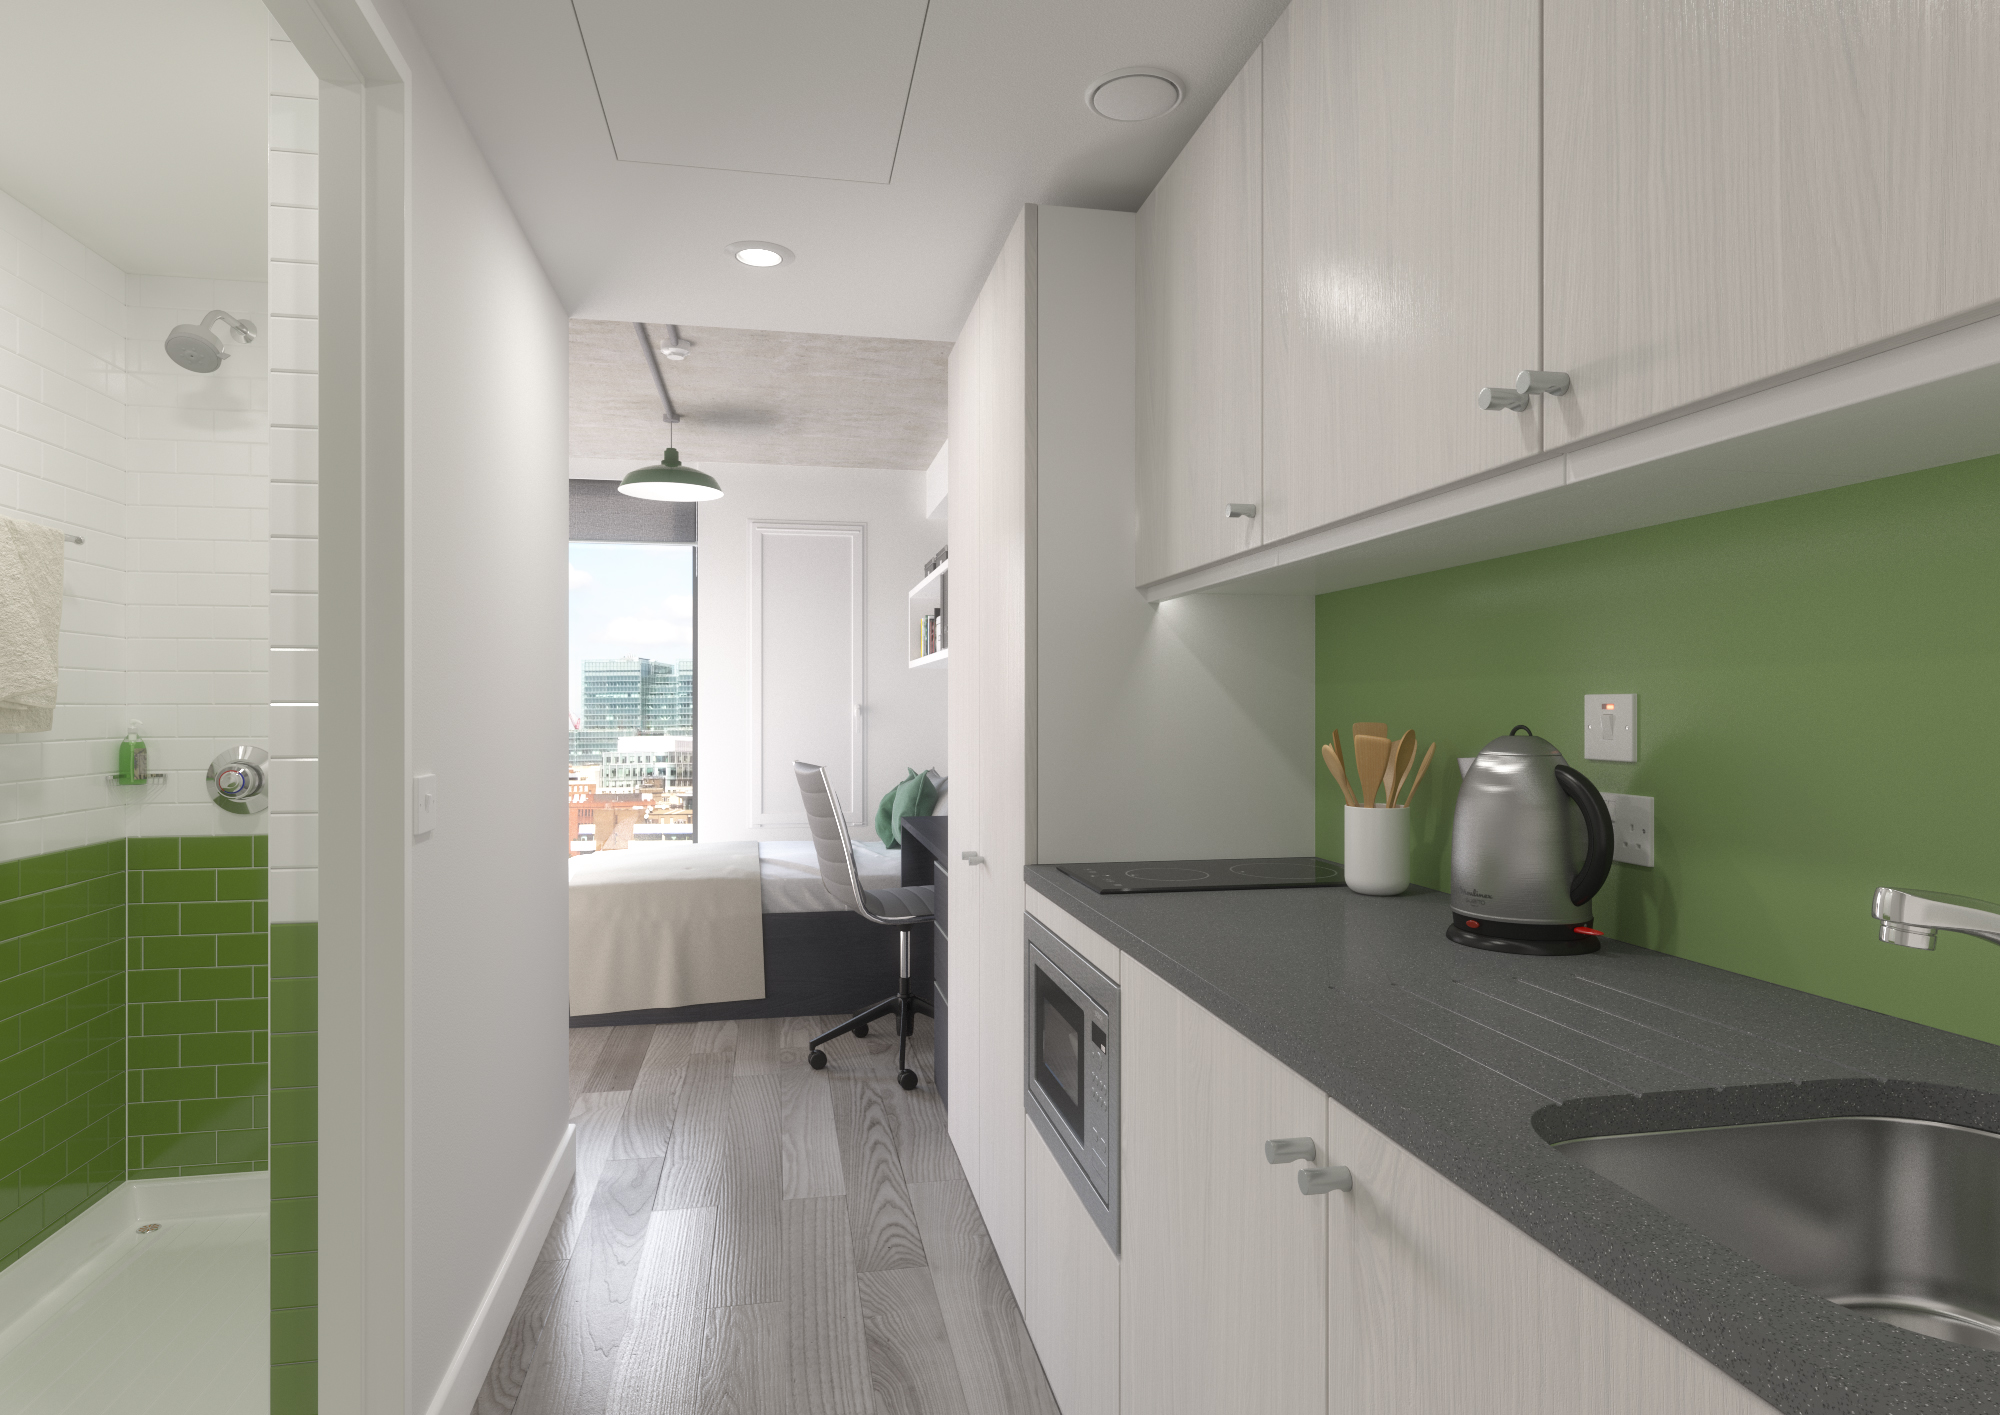 Pure Student Living to open in Whitechapel